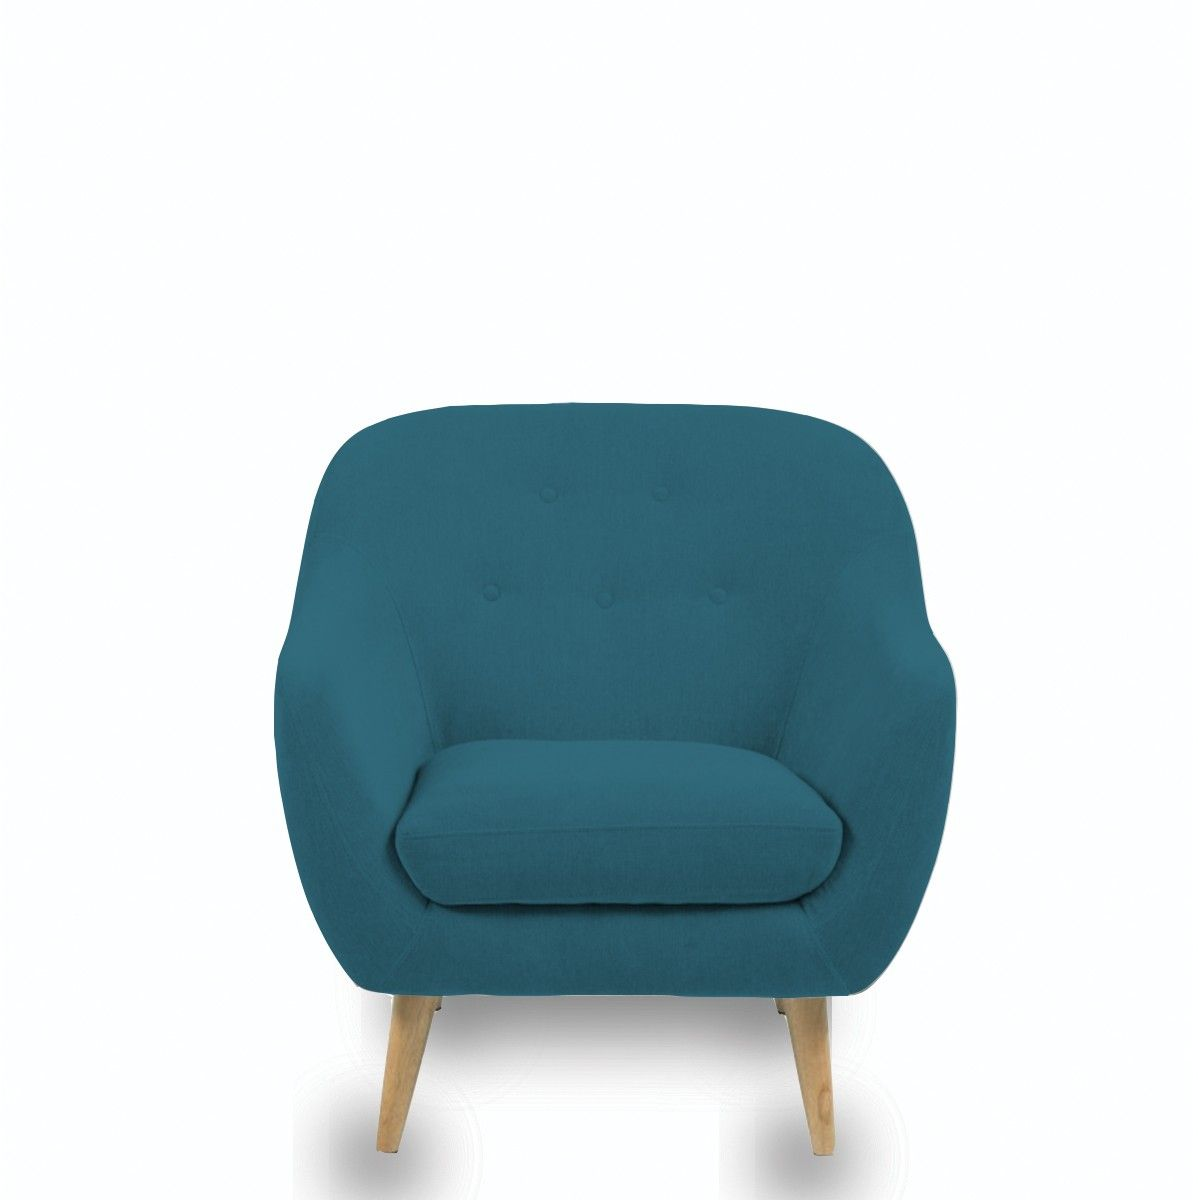 fauteuil scandinave capitonn cirrus bleu p trole drawer 299 fauteuils pinterest fauteuil. Black Bedroom Furniture Sets. Home Design Ideas